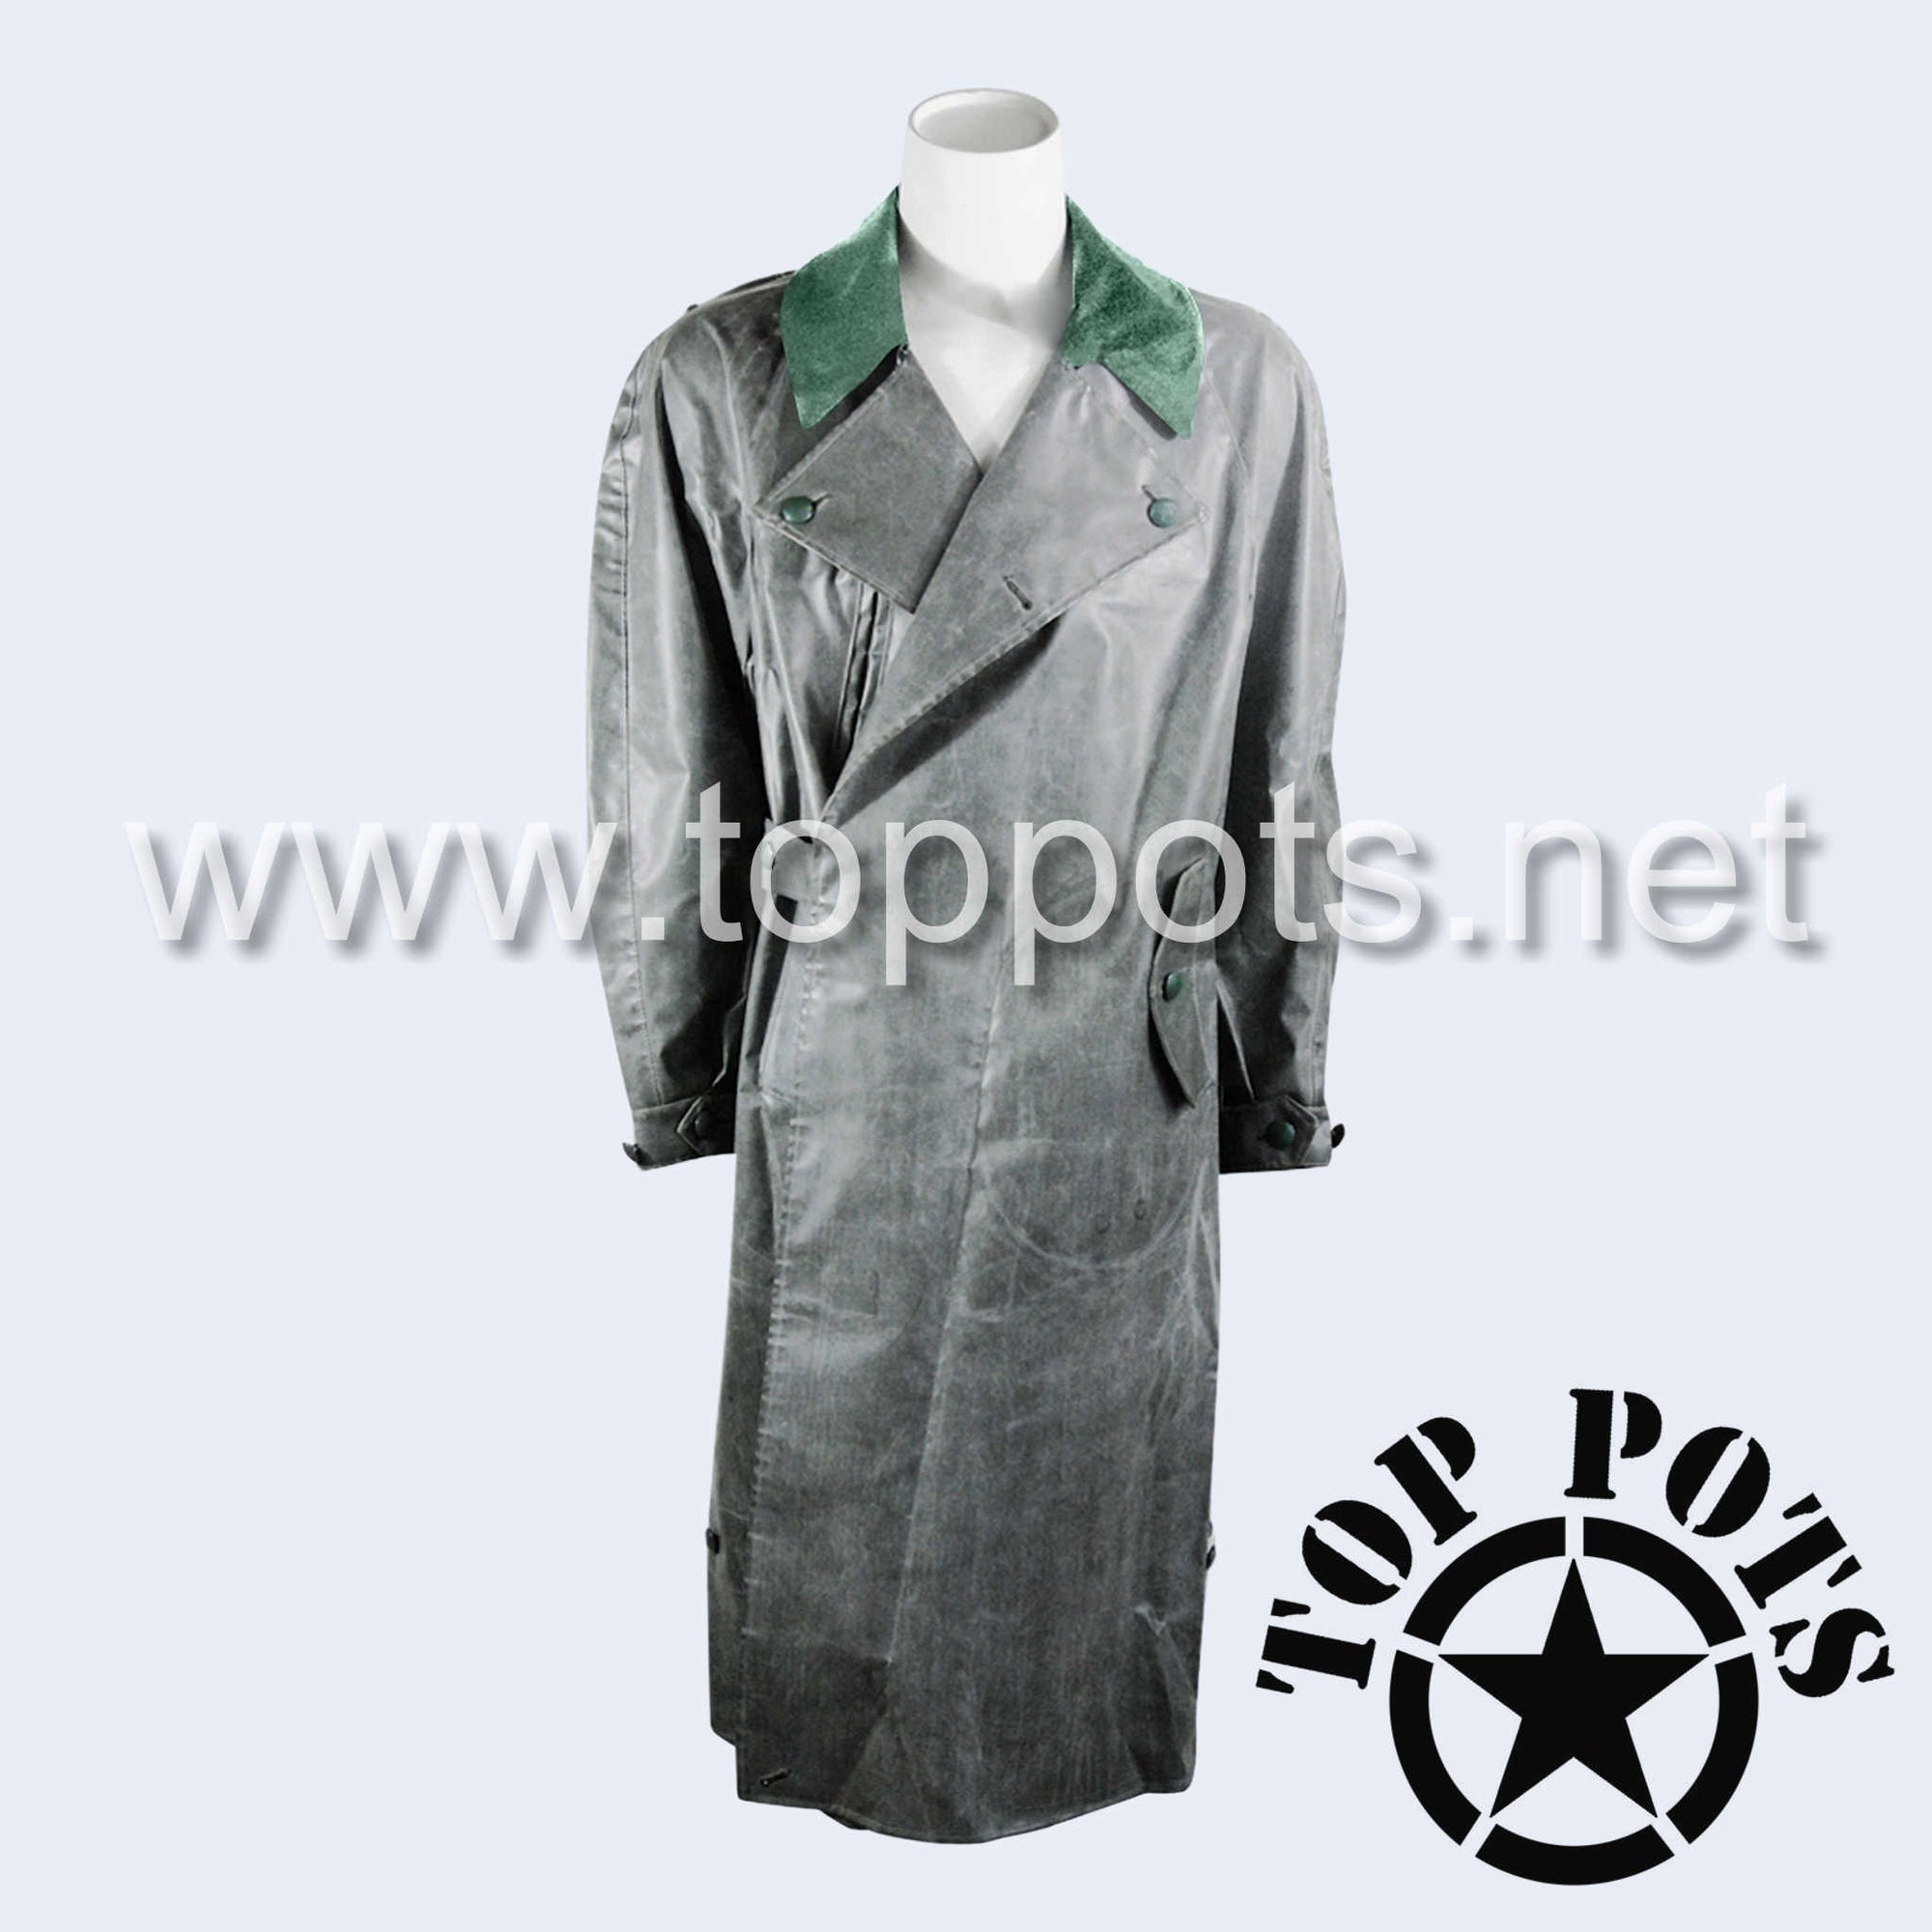 WWII German Army Waffen SS Uniform Motorcycle Rubberized Raincoat Overcoat Jacket - Late War